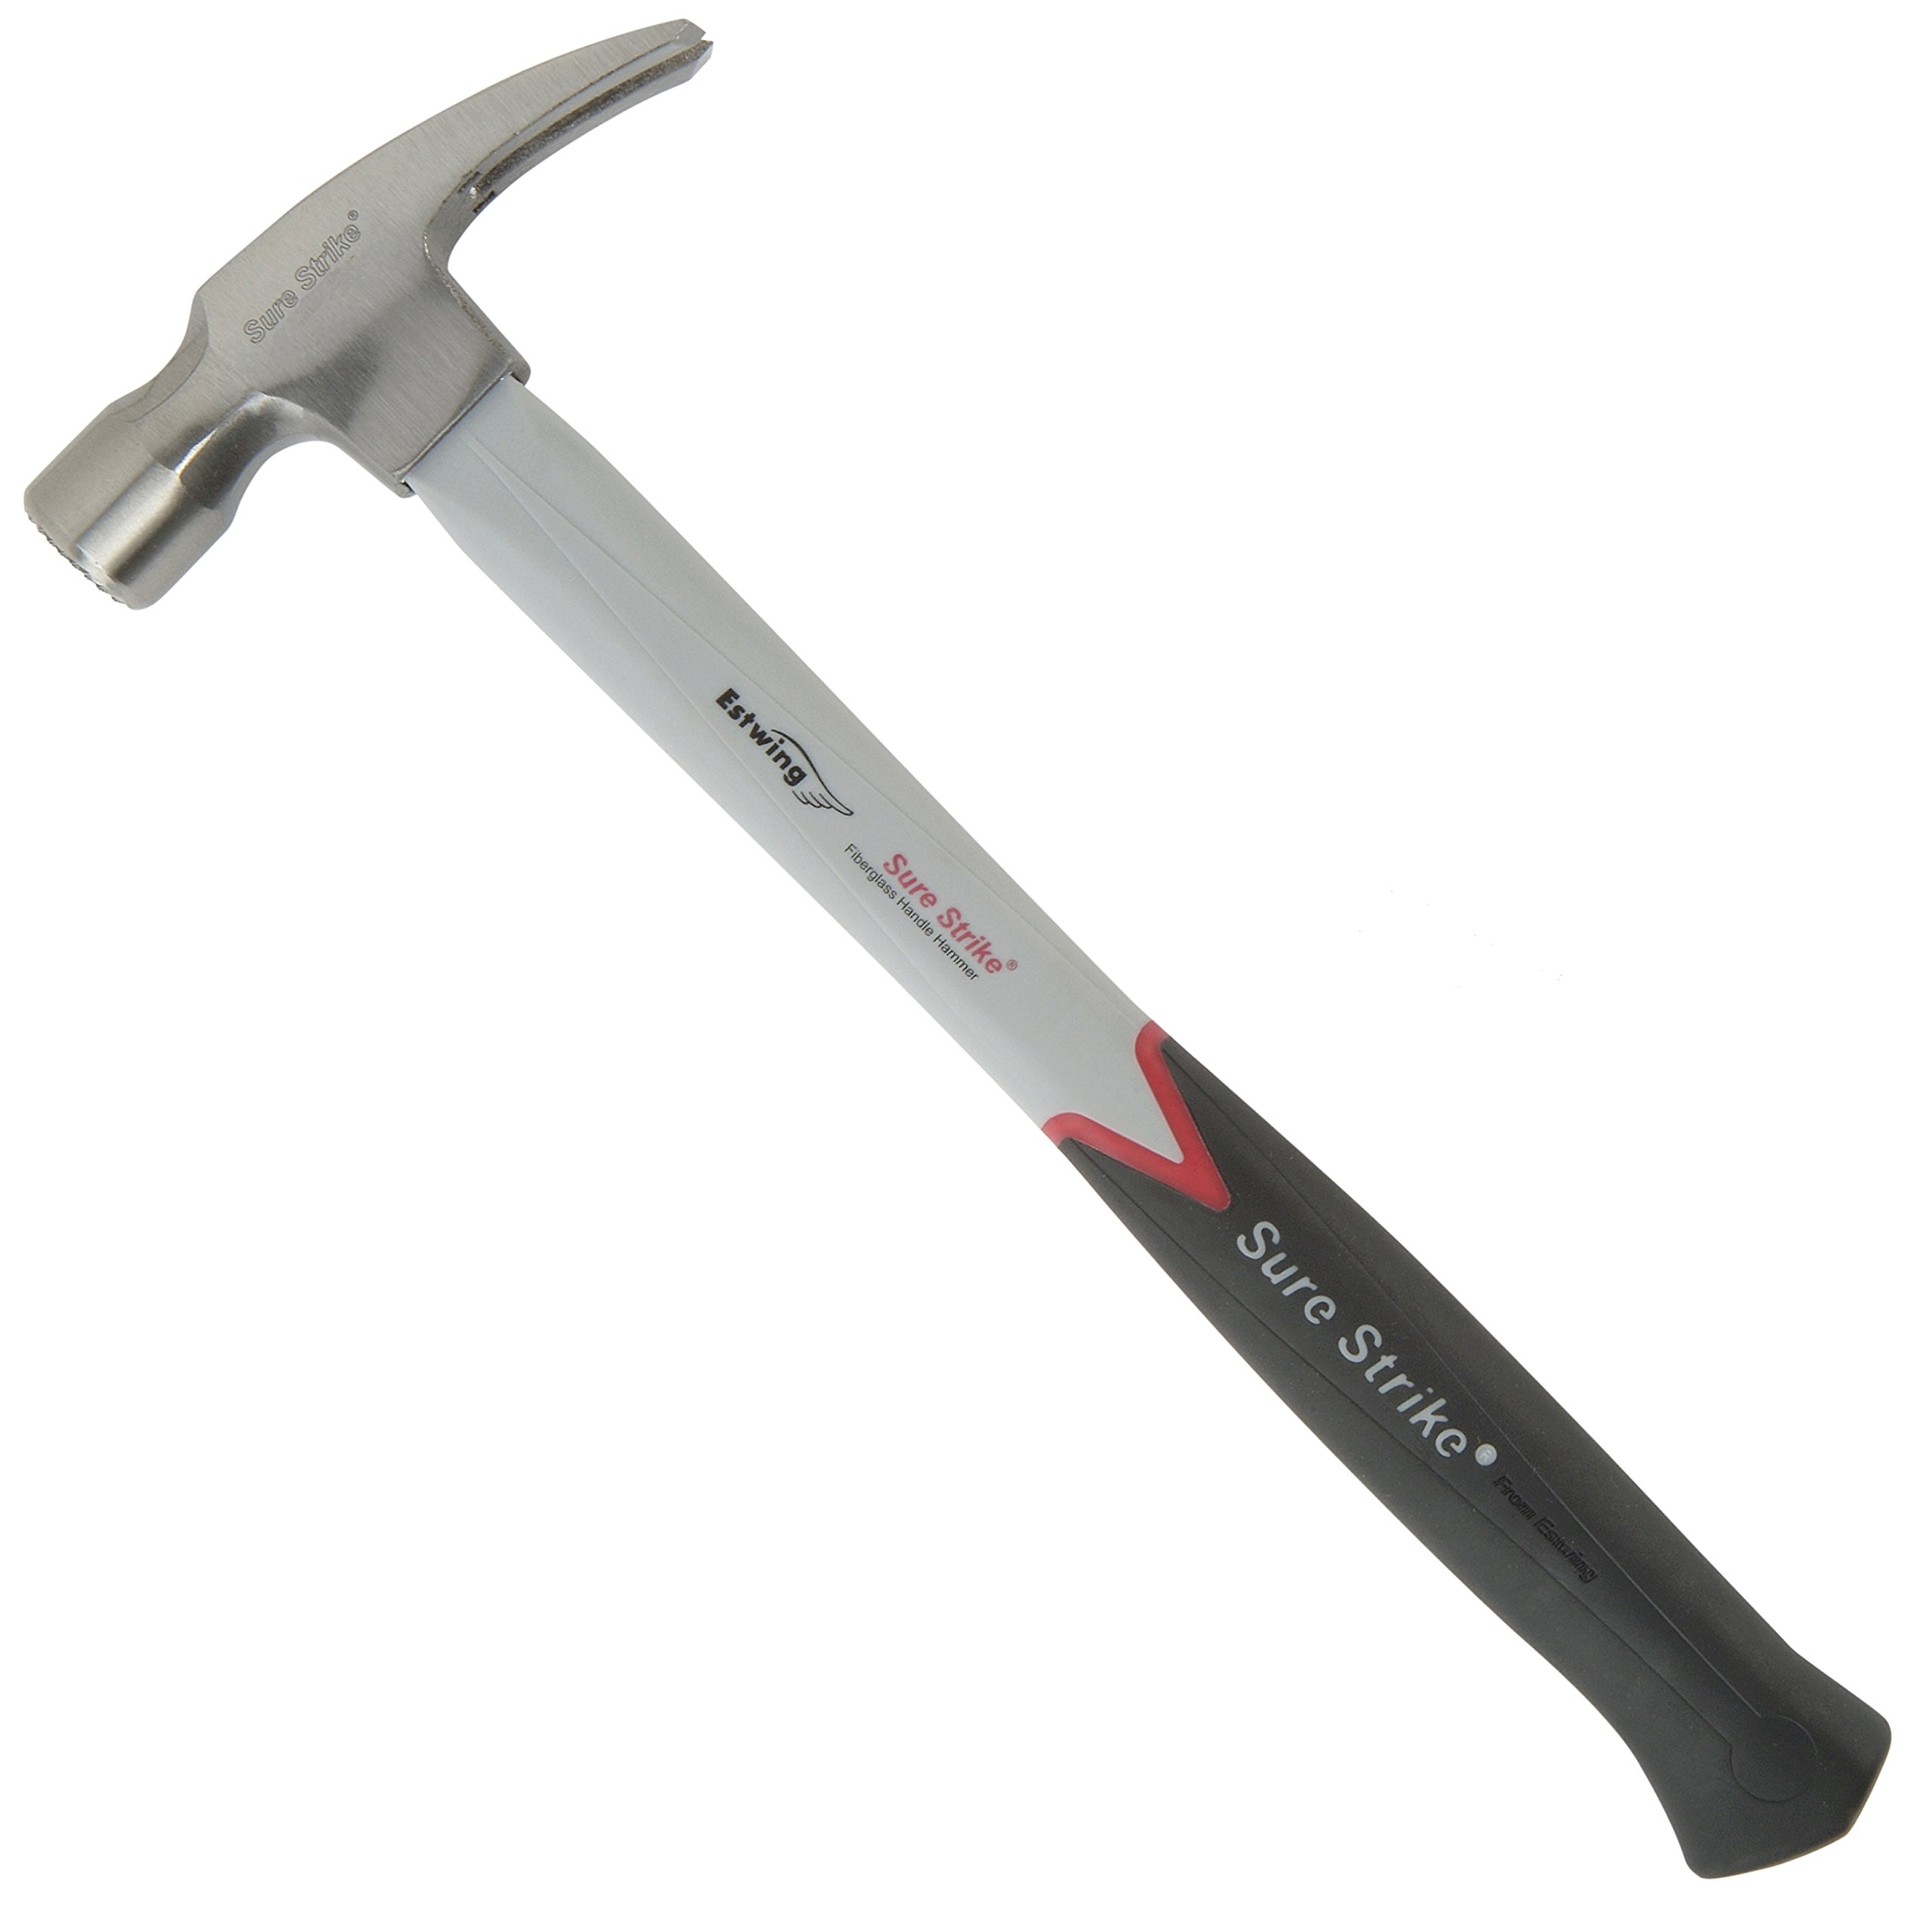 Estwing Sure Strike Hammer - 16 oz Straight Rip Claw with Fiberglass Handle & No-Slip Cushion Grip - MRF16S